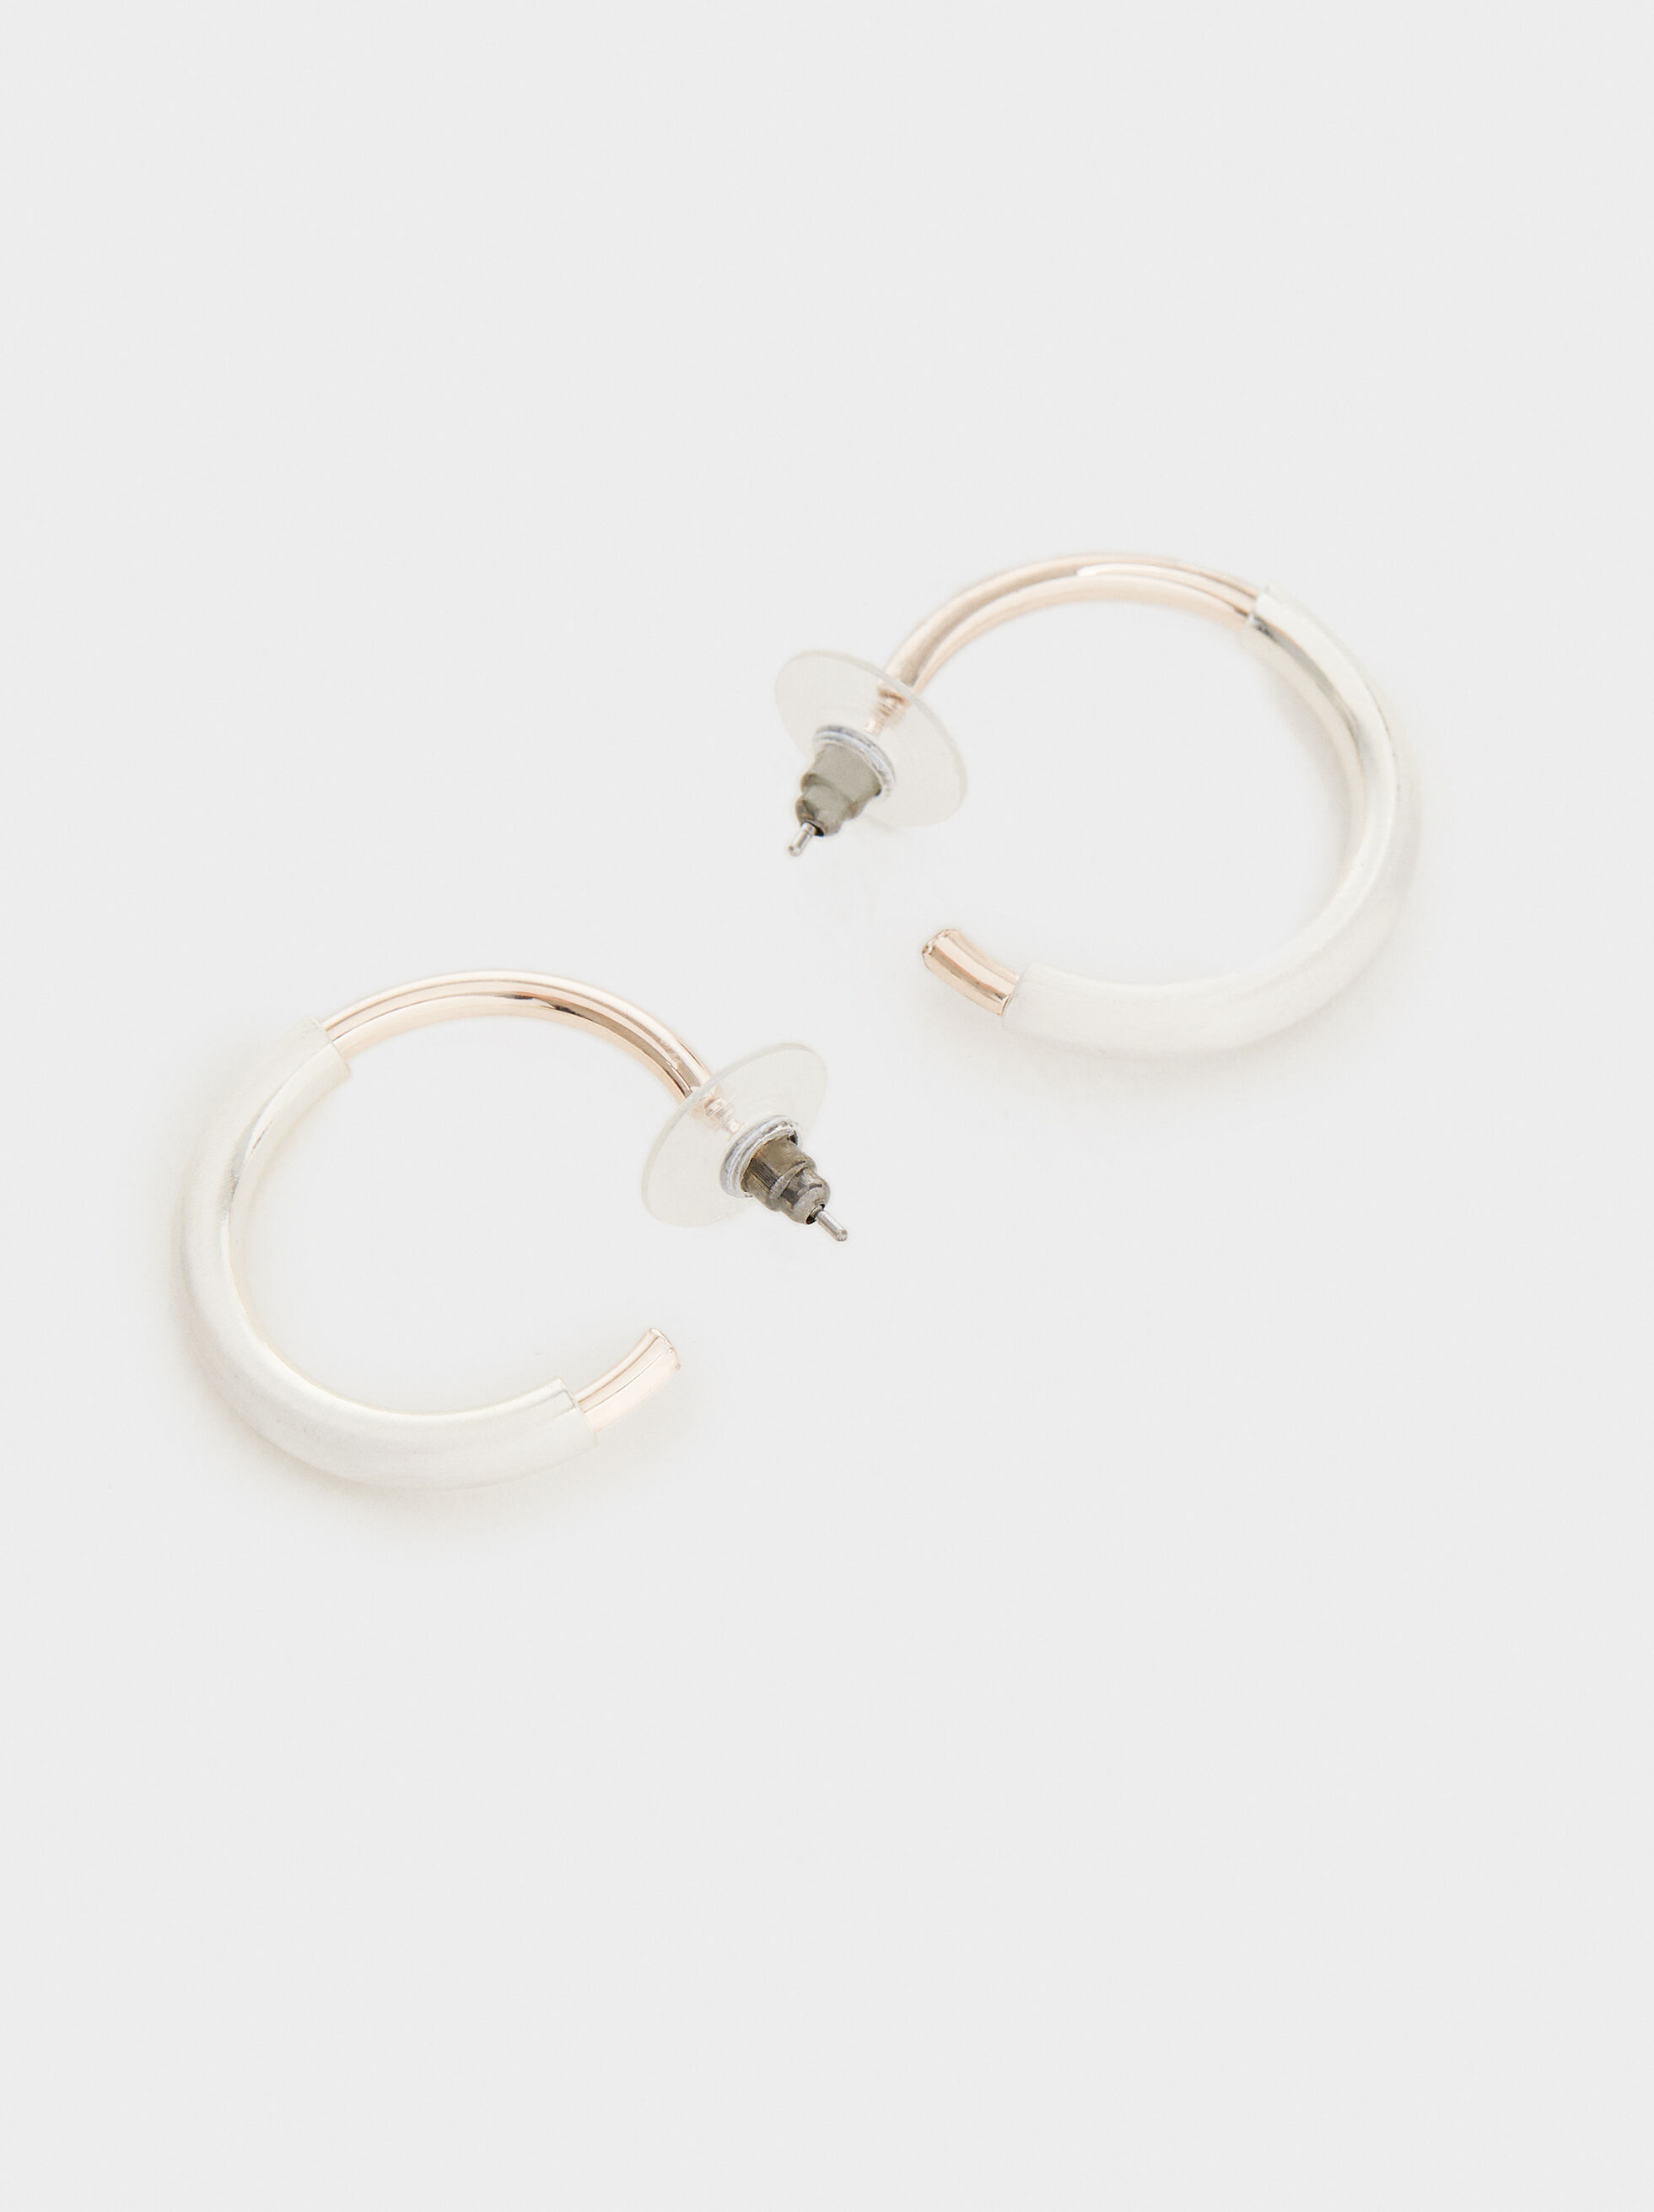 Two-Tone Hoop Earrings, Multicolor, hi-res